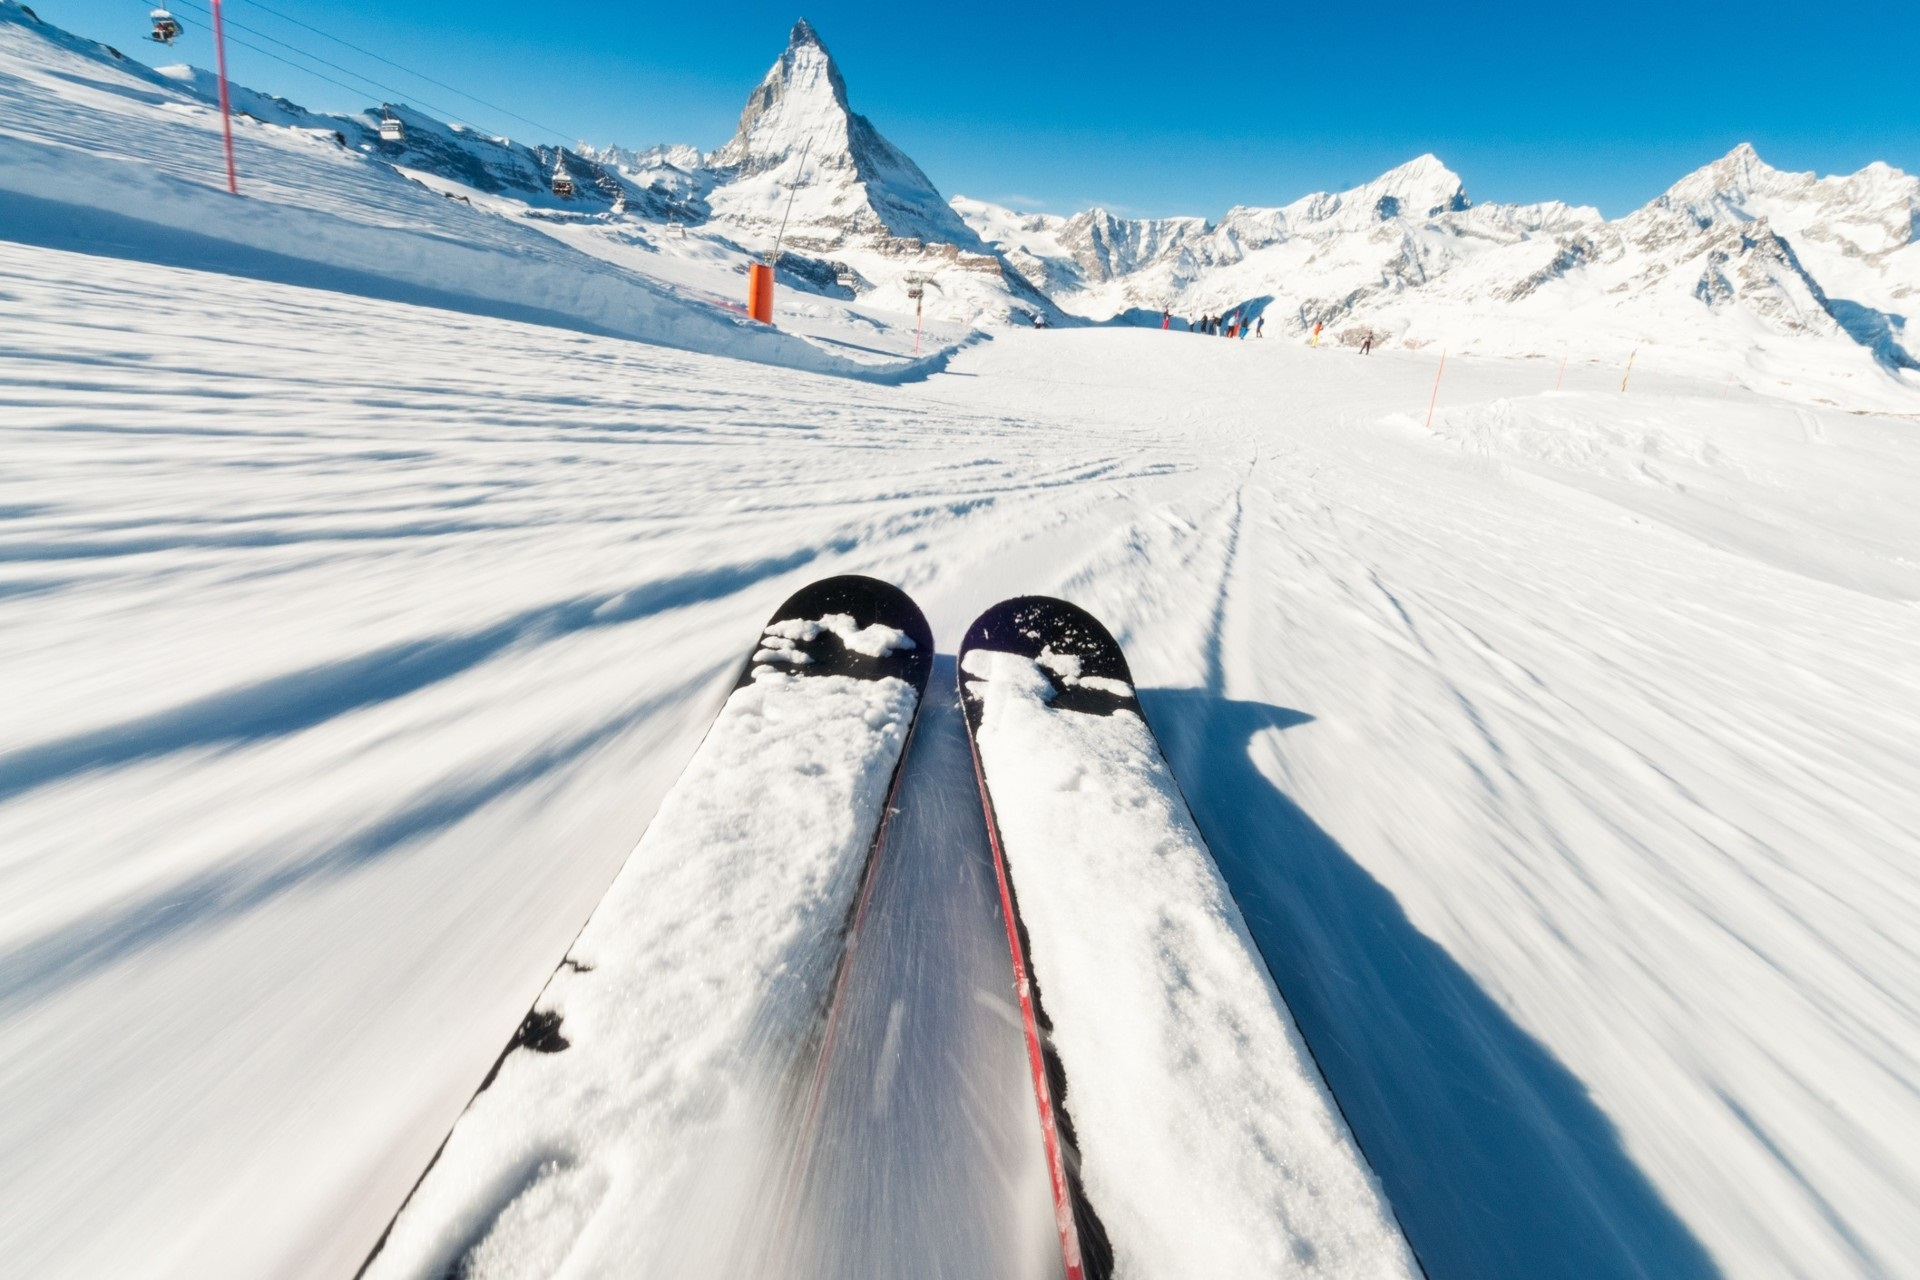 Lean out over your skis